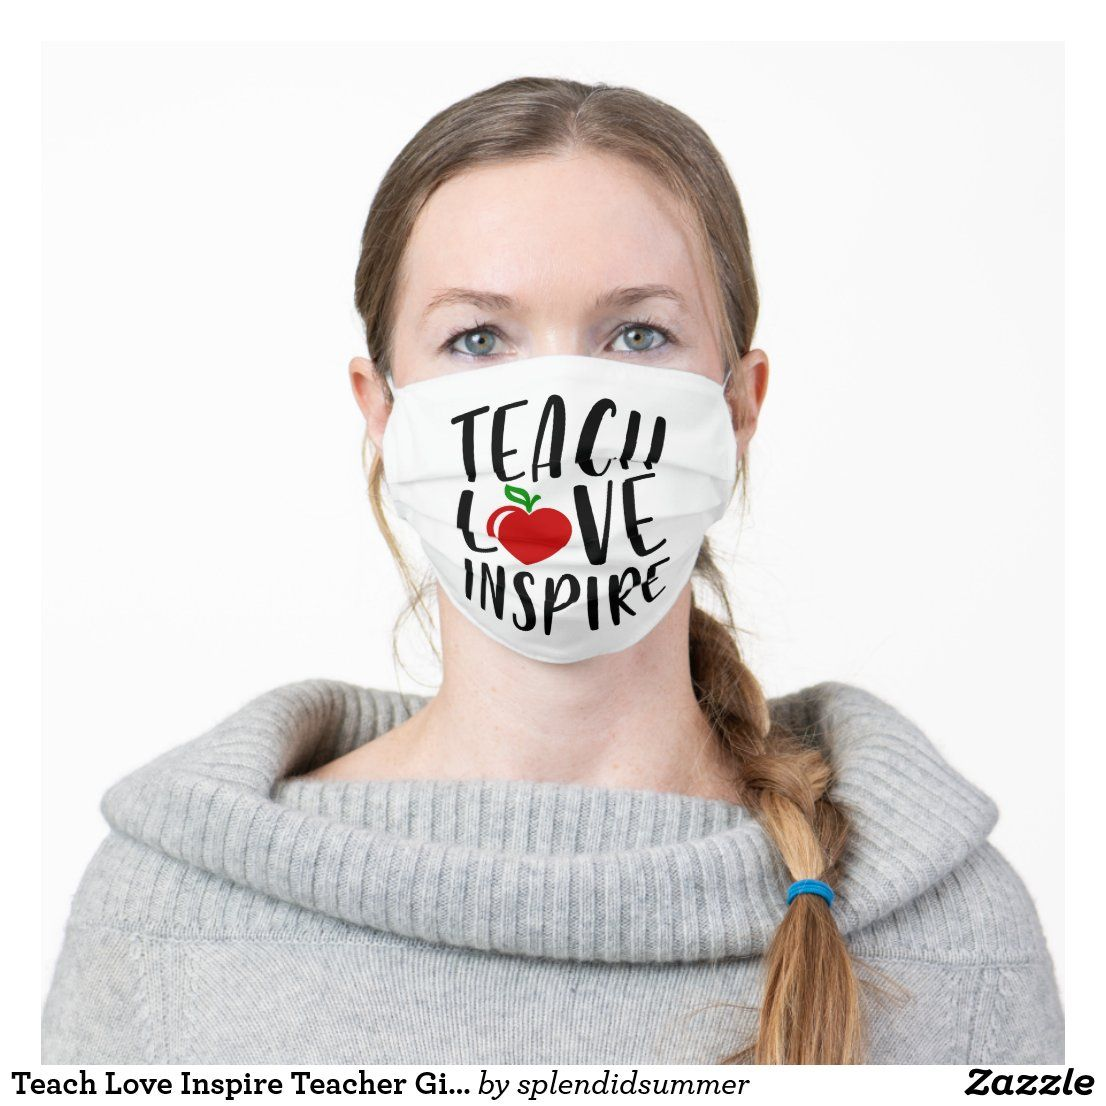 Teach Love Inspire Teacher Gift Cloth Face Mask Zazzle Com In 2020 Mouth Mask Fashion Face Mask Mask